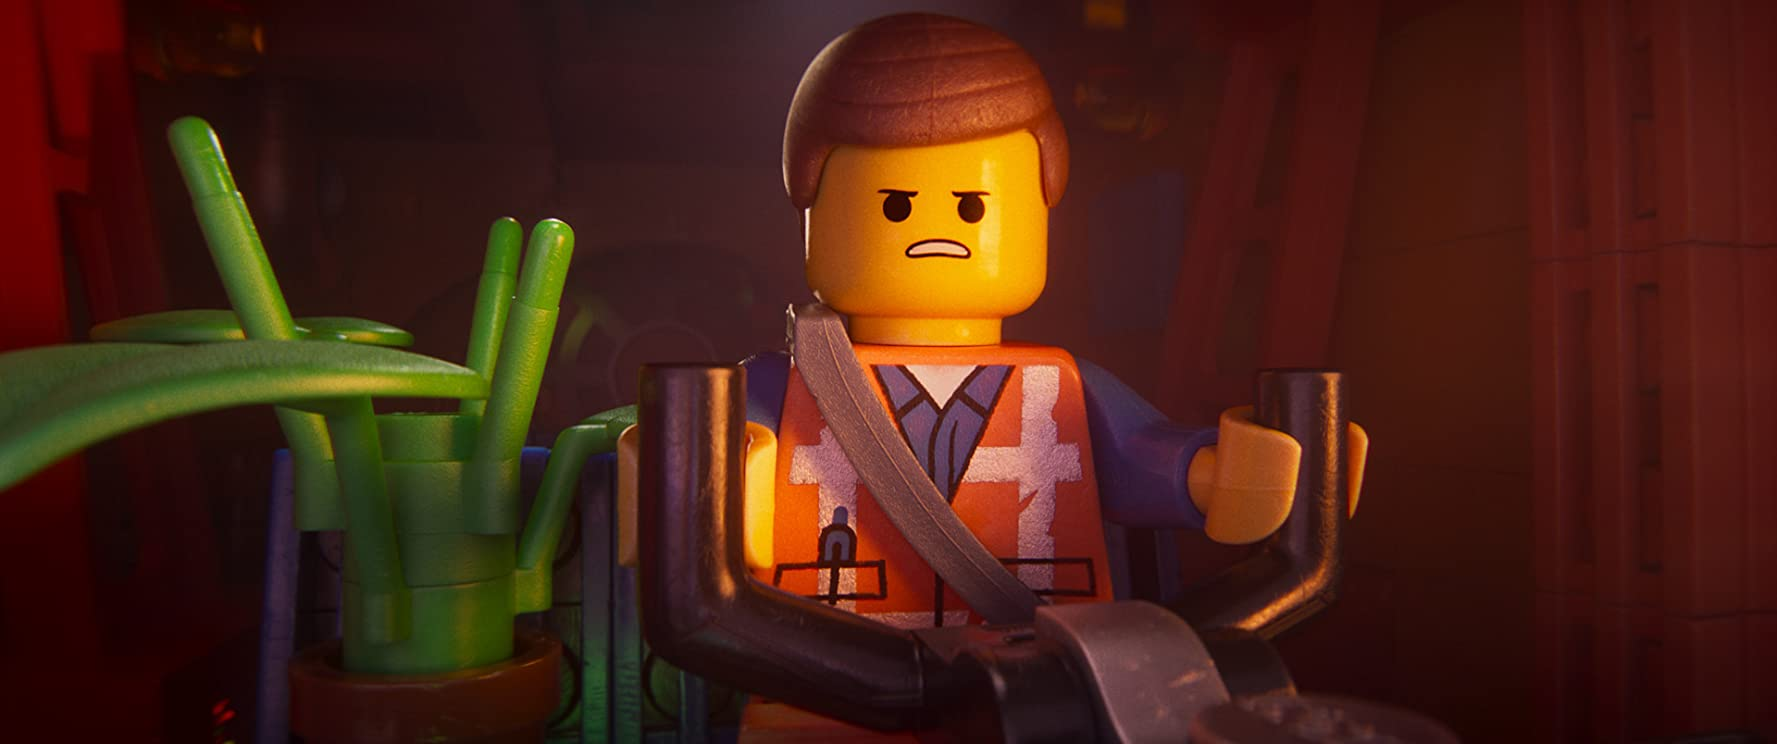 The Lego Movie 2: The Second Part / Warner Bros. Pictures. © 2019. All Rights Reserved.